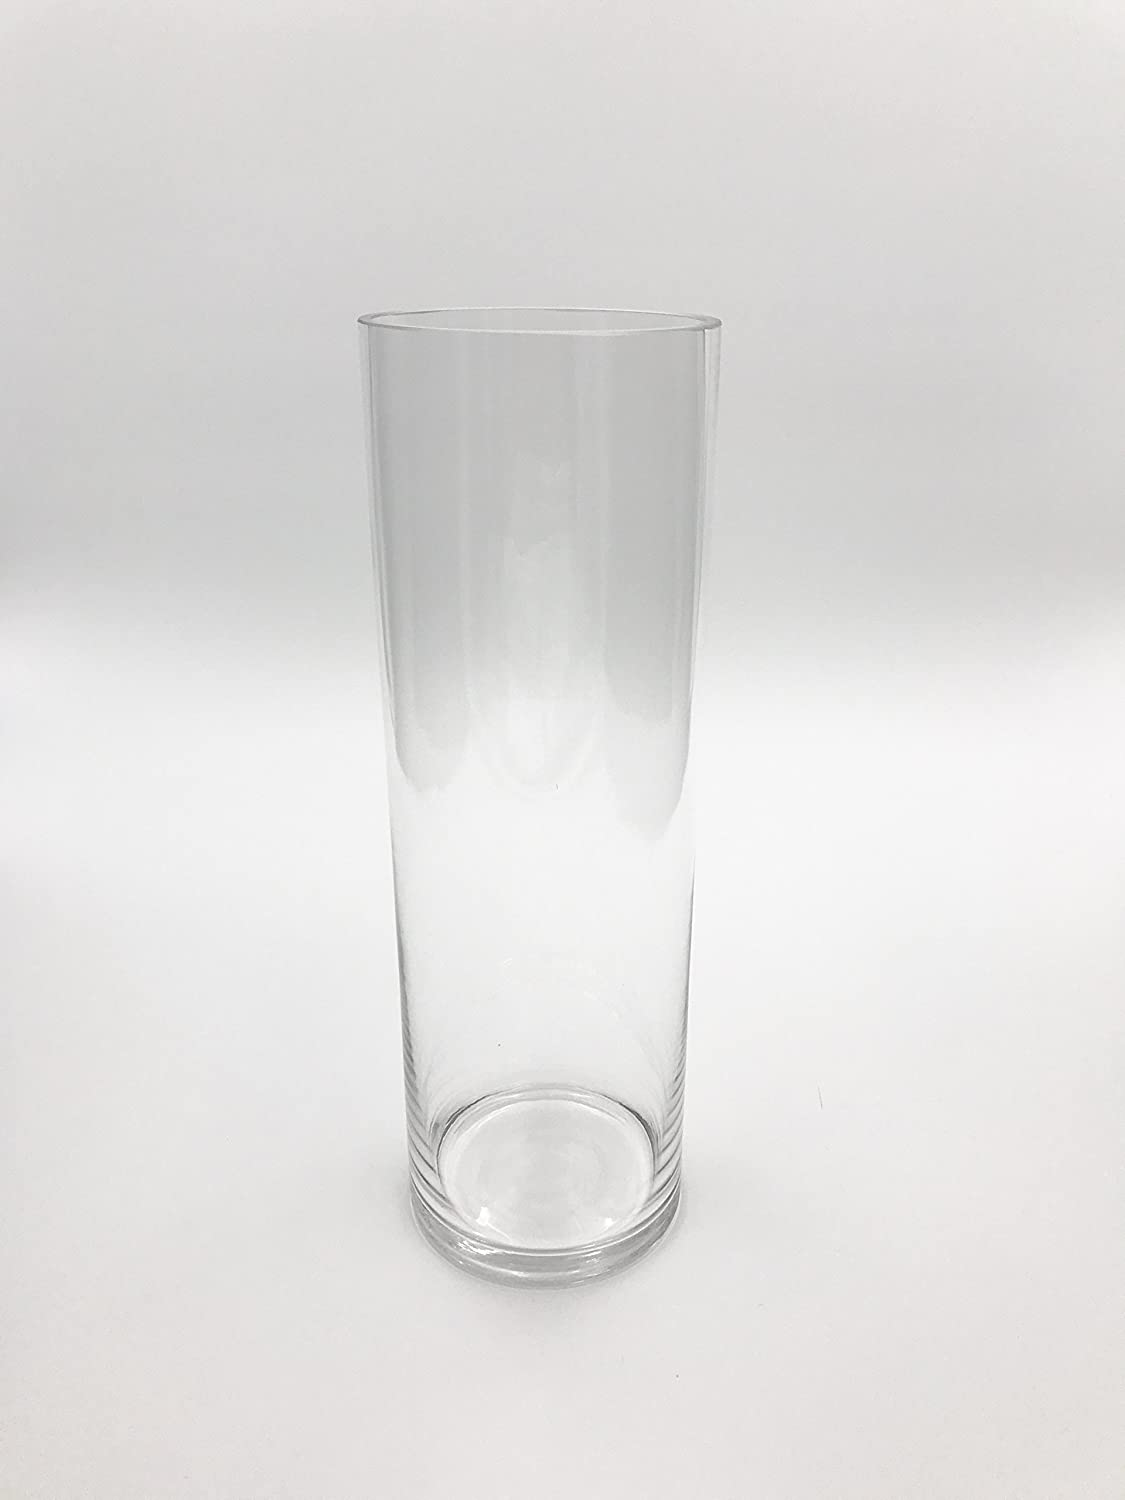 Craft and Party Clear Cylinder Vases 4 Diameter Opening. 12, 8 Sets of 12